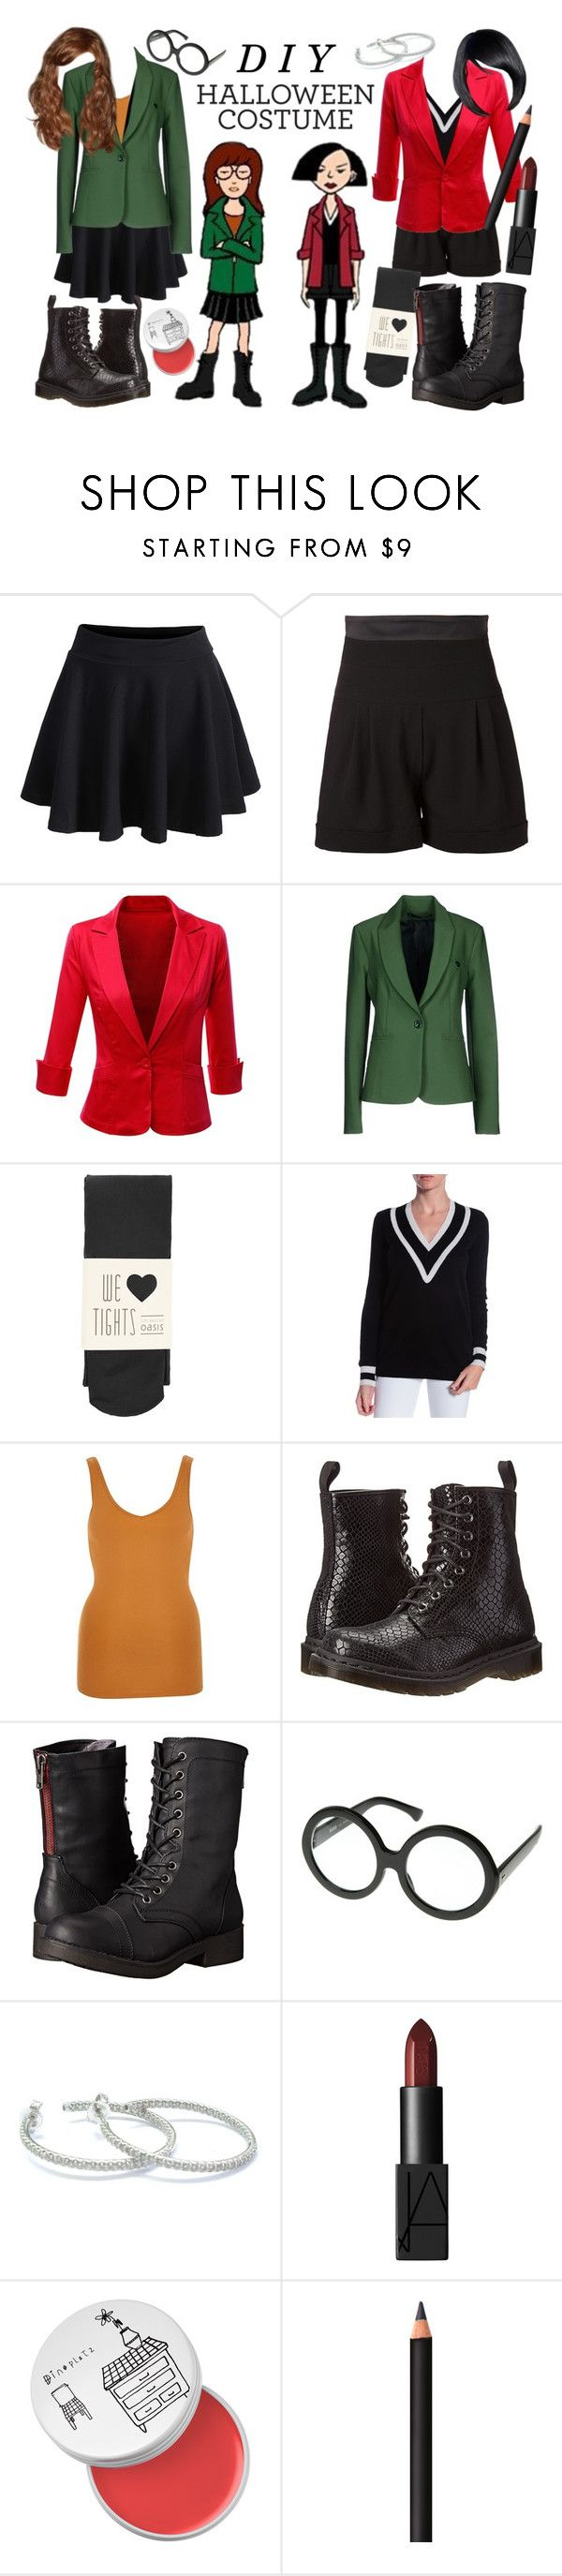 """""""Daria and Jane Costumes"""" by lunachick ❤ liked on Polyvore featuring Dr. Martens, Alexandre Vauthier, Doublju, Annarita N., Oasis, Minnie Rose, River Island, Madden Girl, Roberto Coin and NARS Cosmetics"""